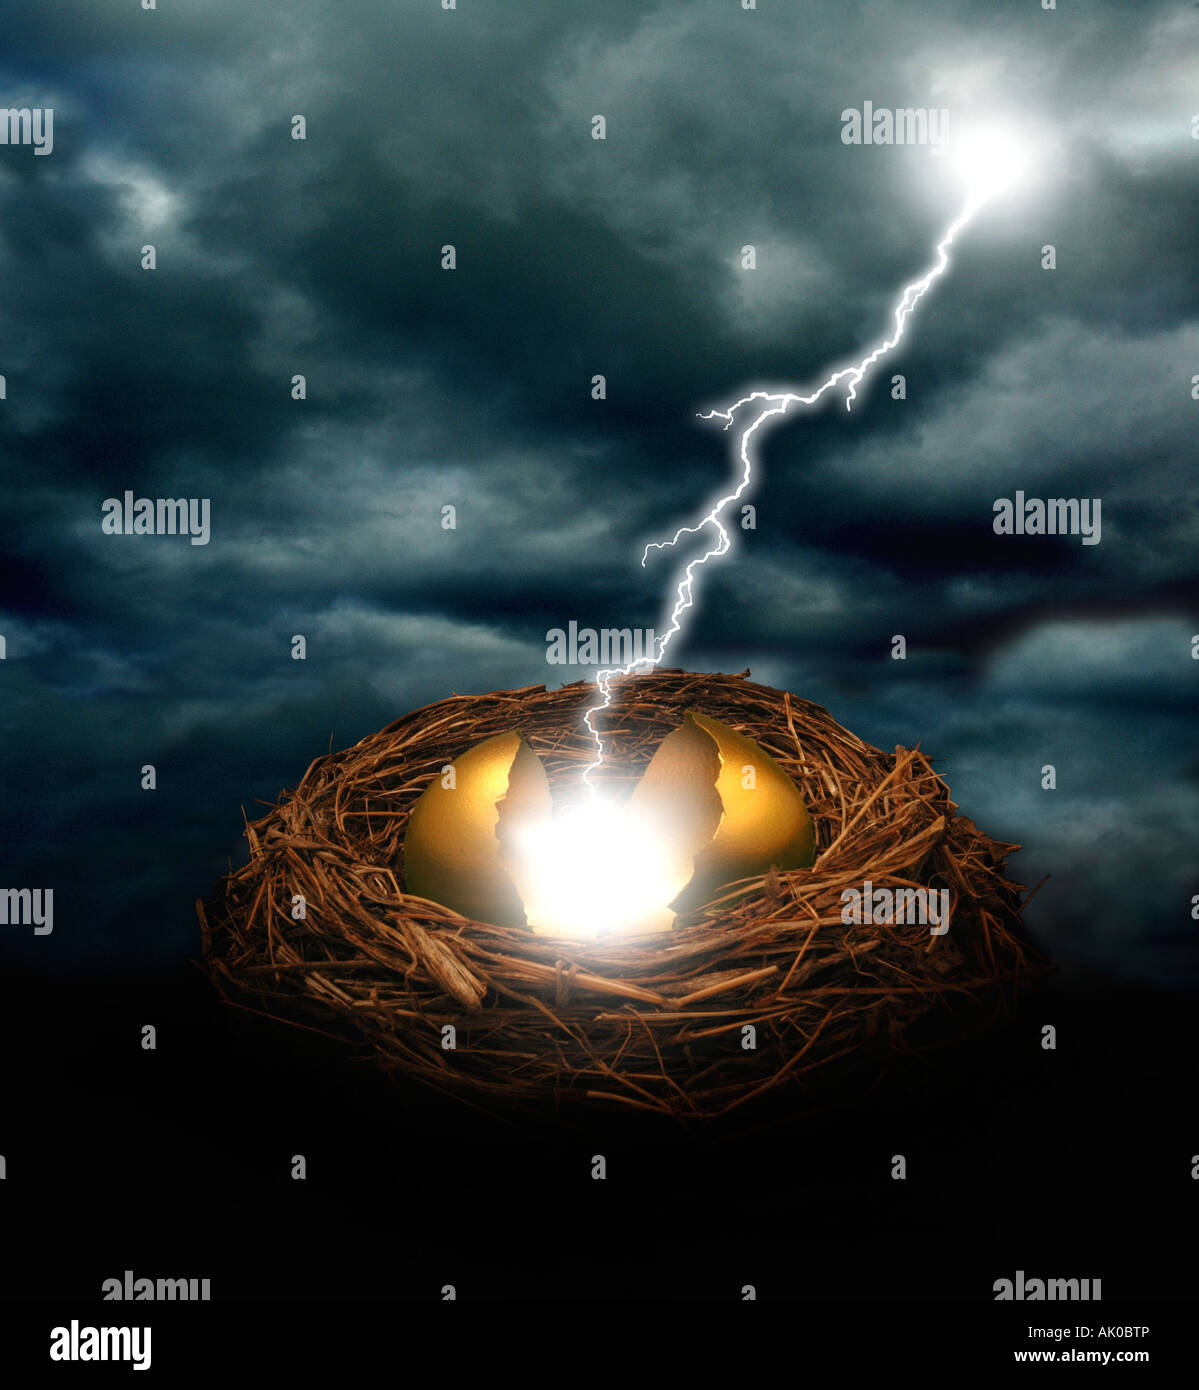 A golden nest egg cracked open by a bolt of lightning under a dark cloudy sky Could symbolize financial crash threat - Stock Image